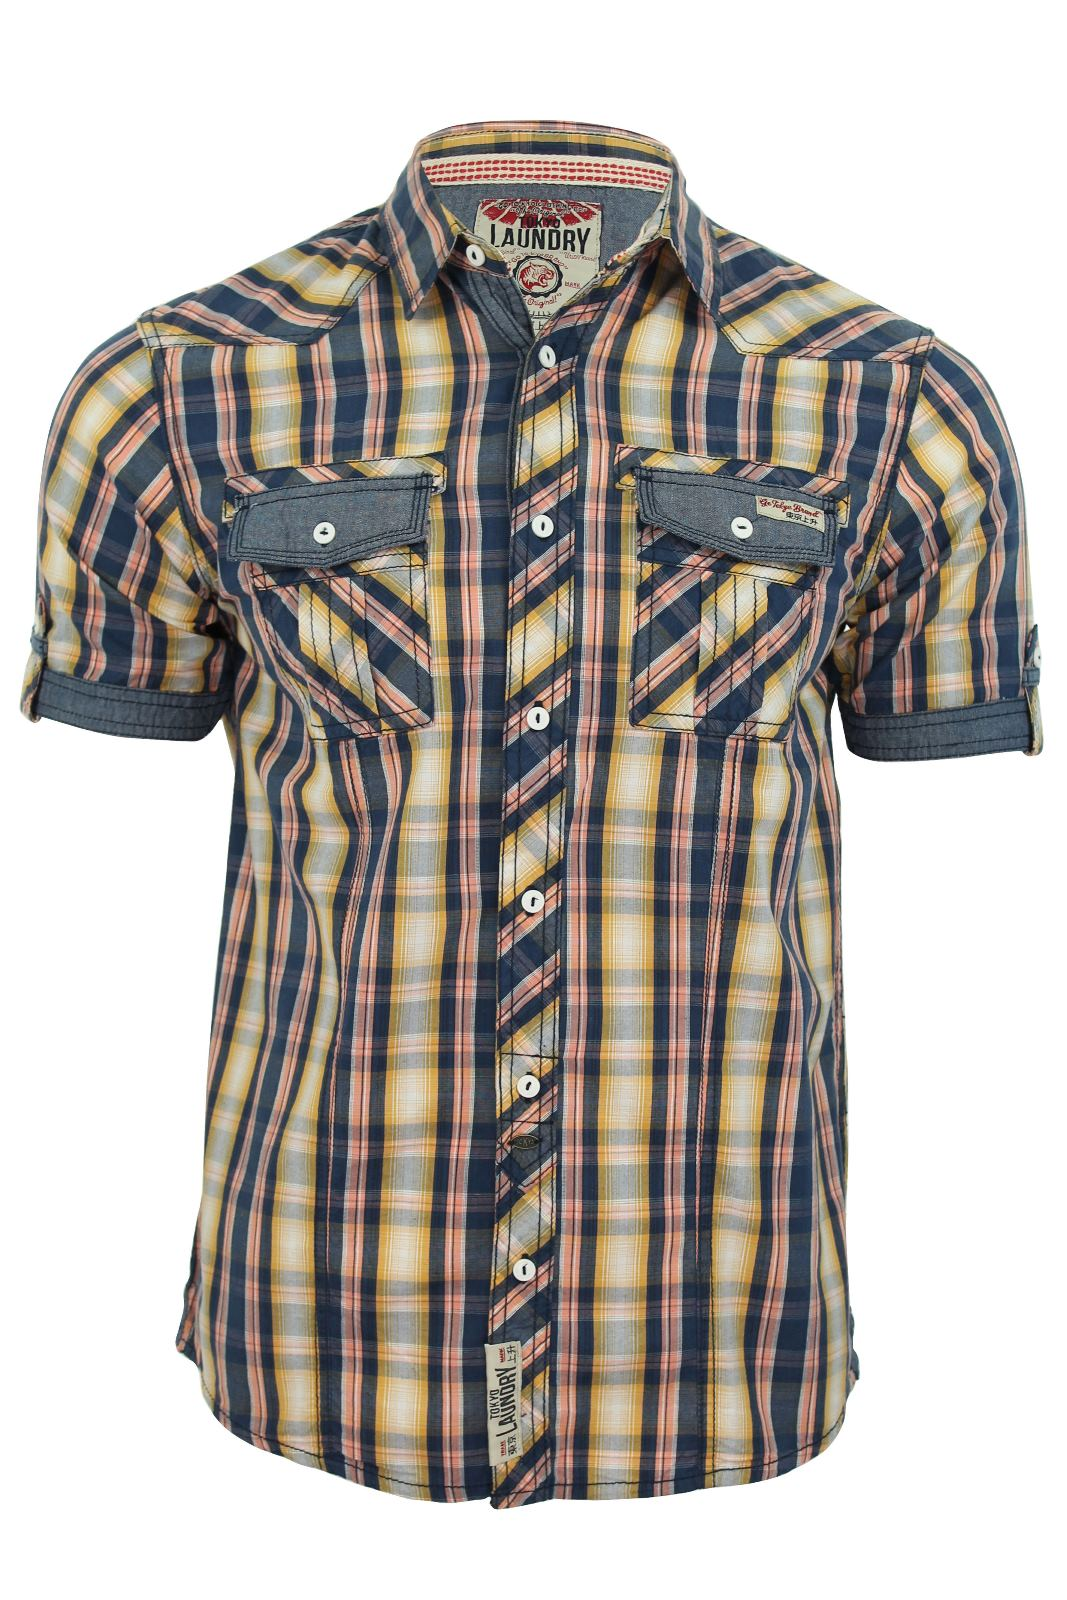 Tokyo-Laundry-Mens-Shirt-039-Austin-039-Checked-with-Chambray-Trims-Short-Sleeved